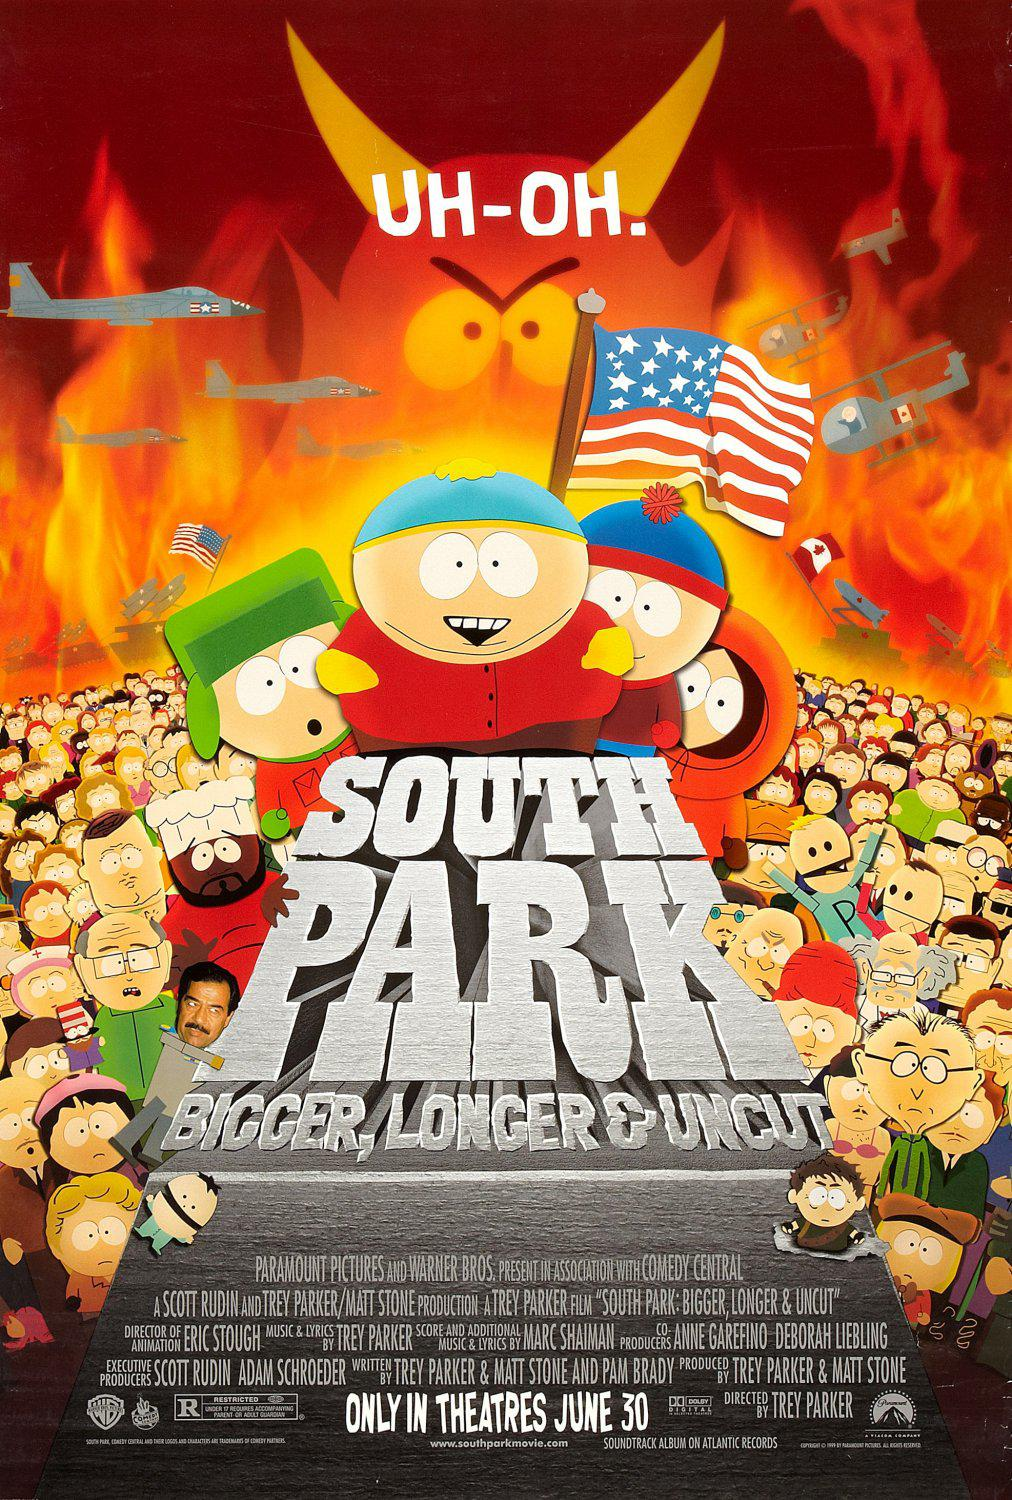 South Park bigger longer and uncut - animated film cartoon poster